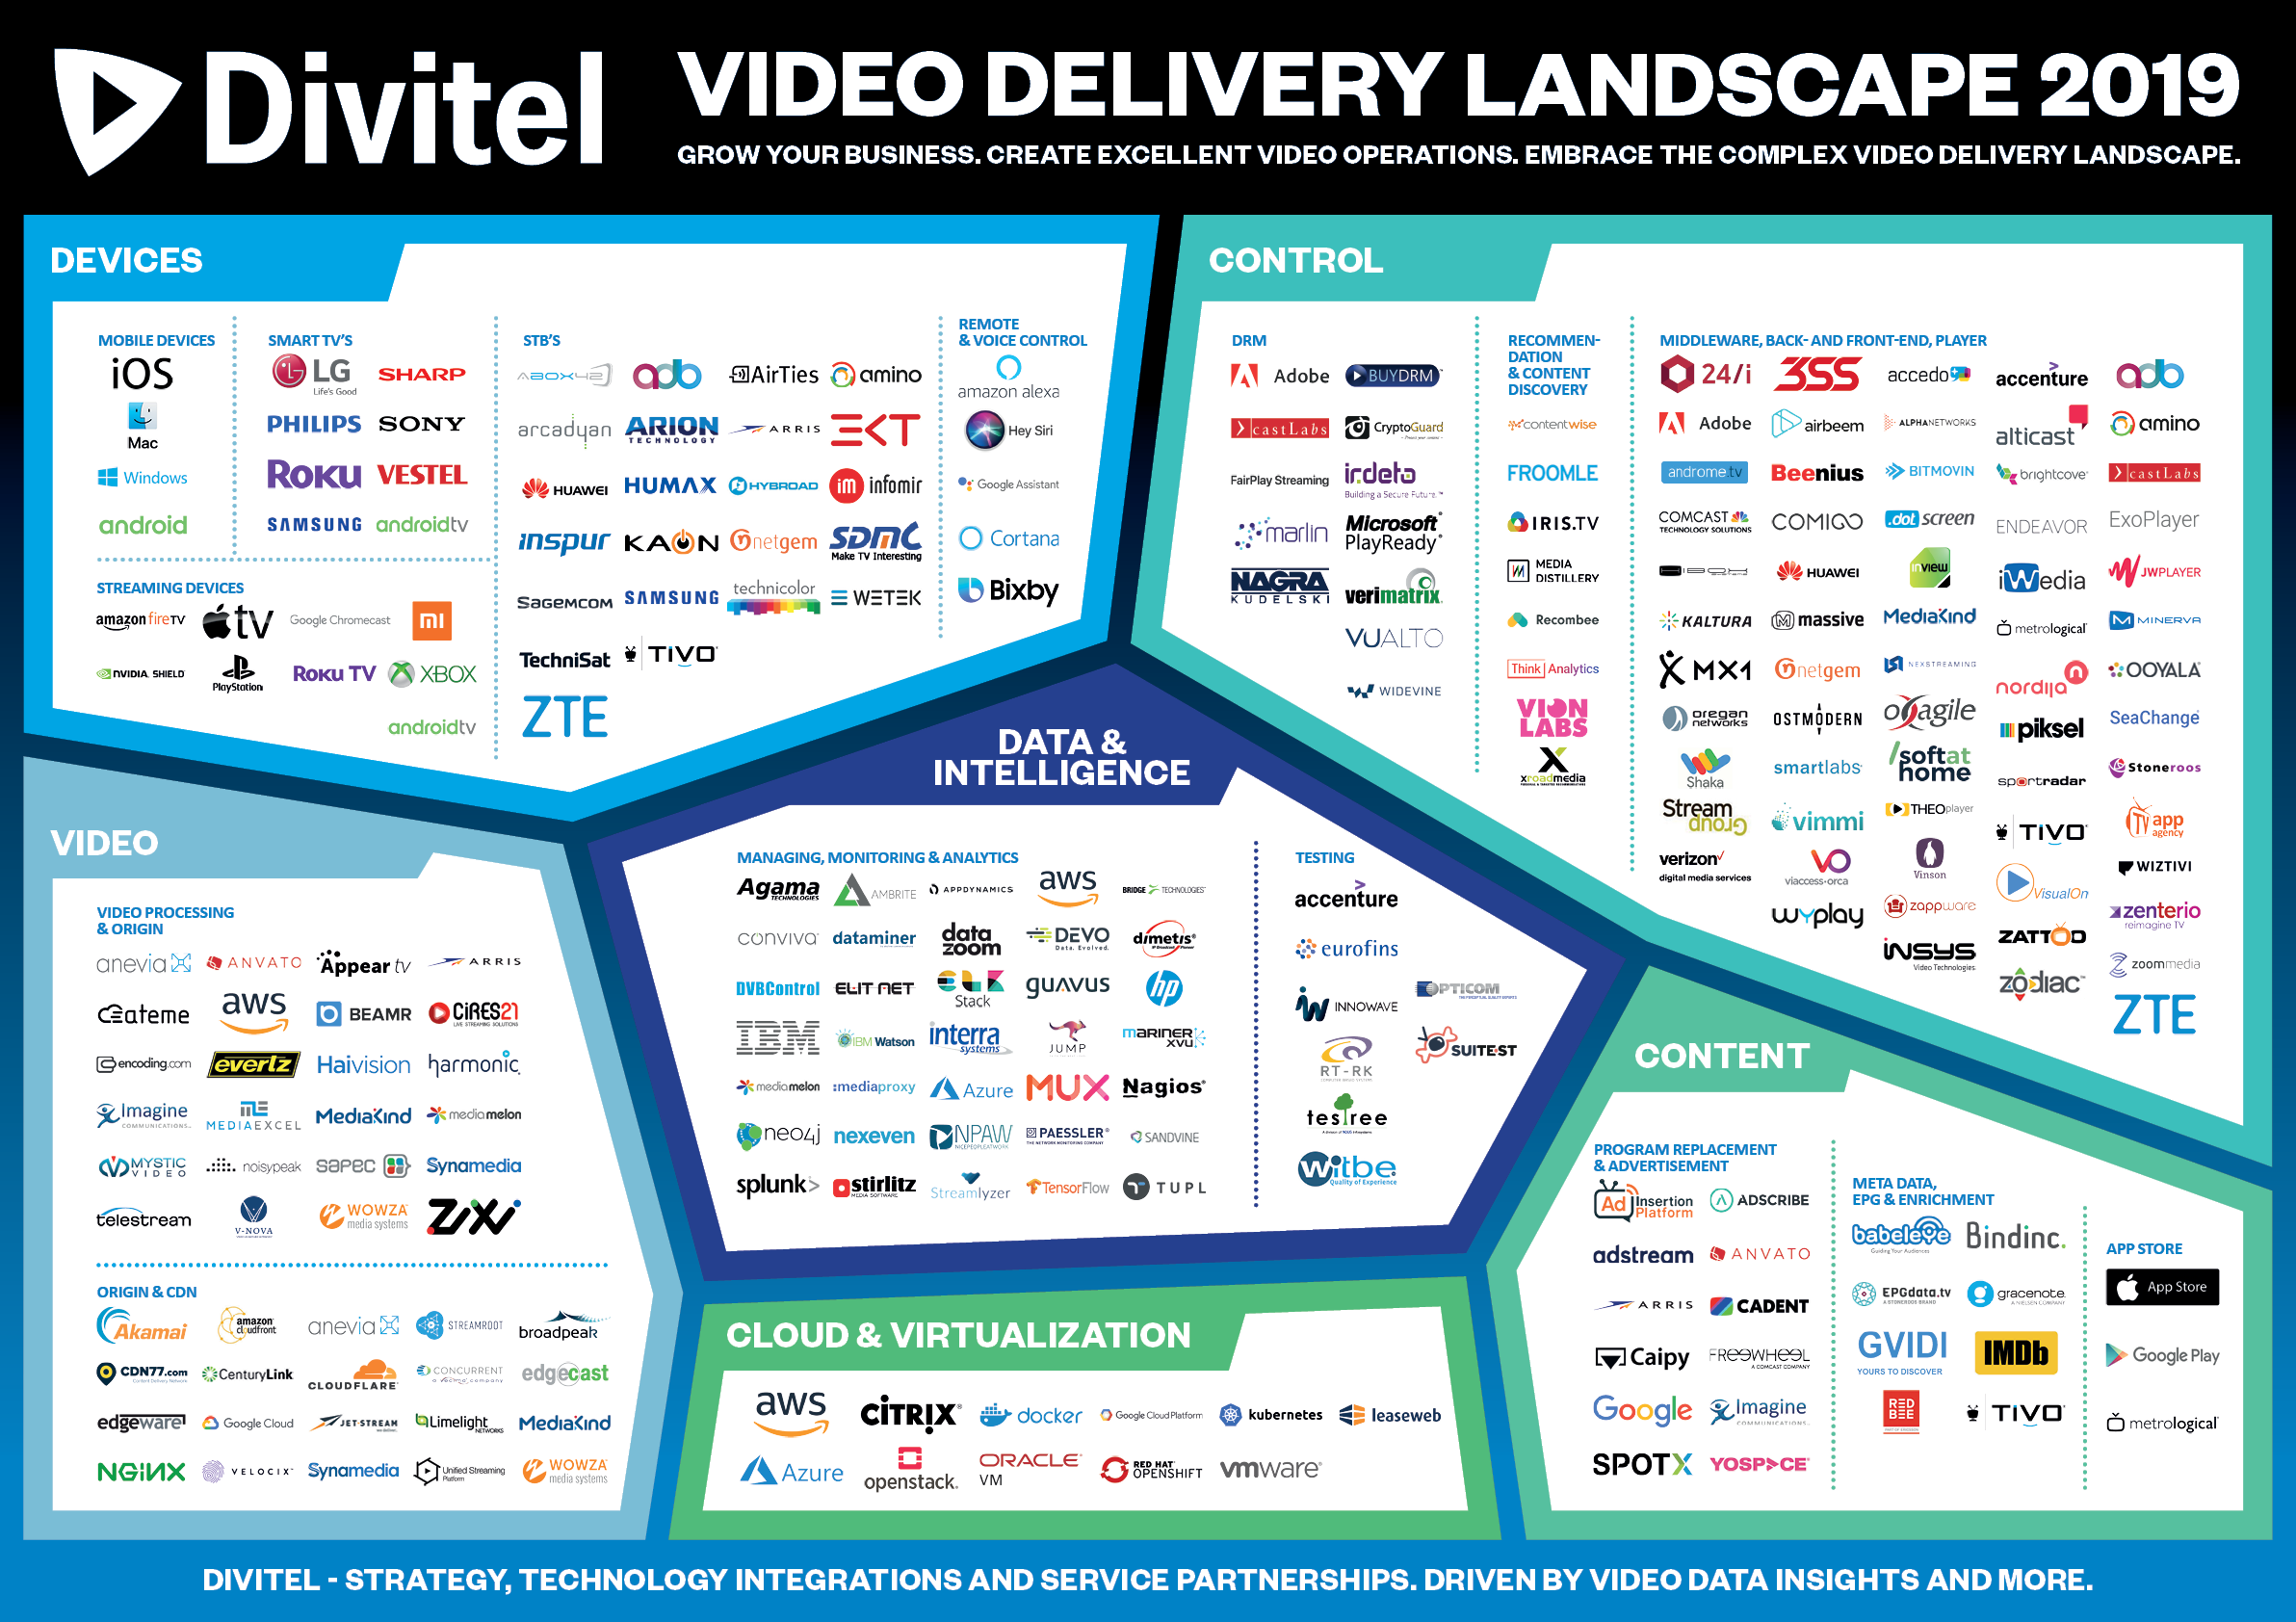 Video Delivery Landscape 2019